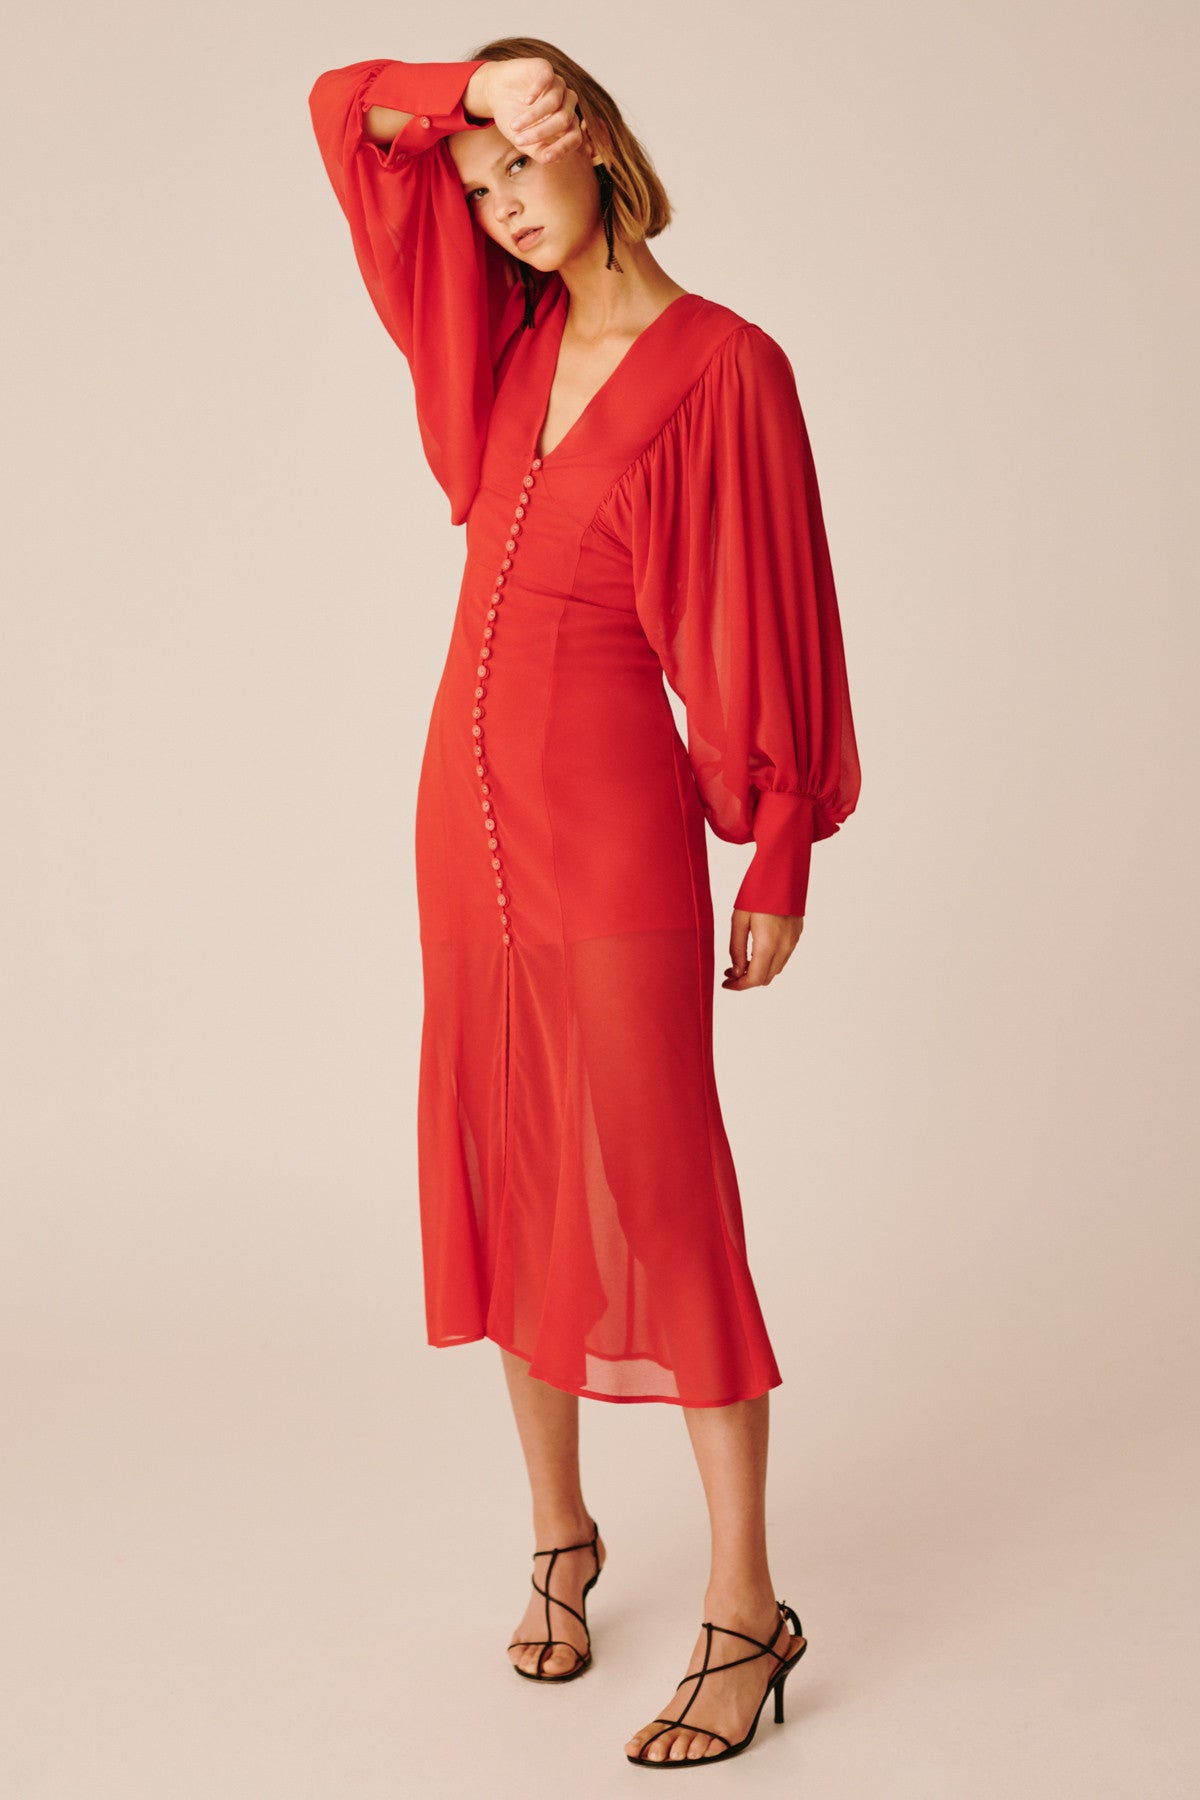 f4ba3a81cdf C/MEO COLLECTIVE | APPARENT LONG SLEEVE DRESS red | C/MEO COLLECTIVE